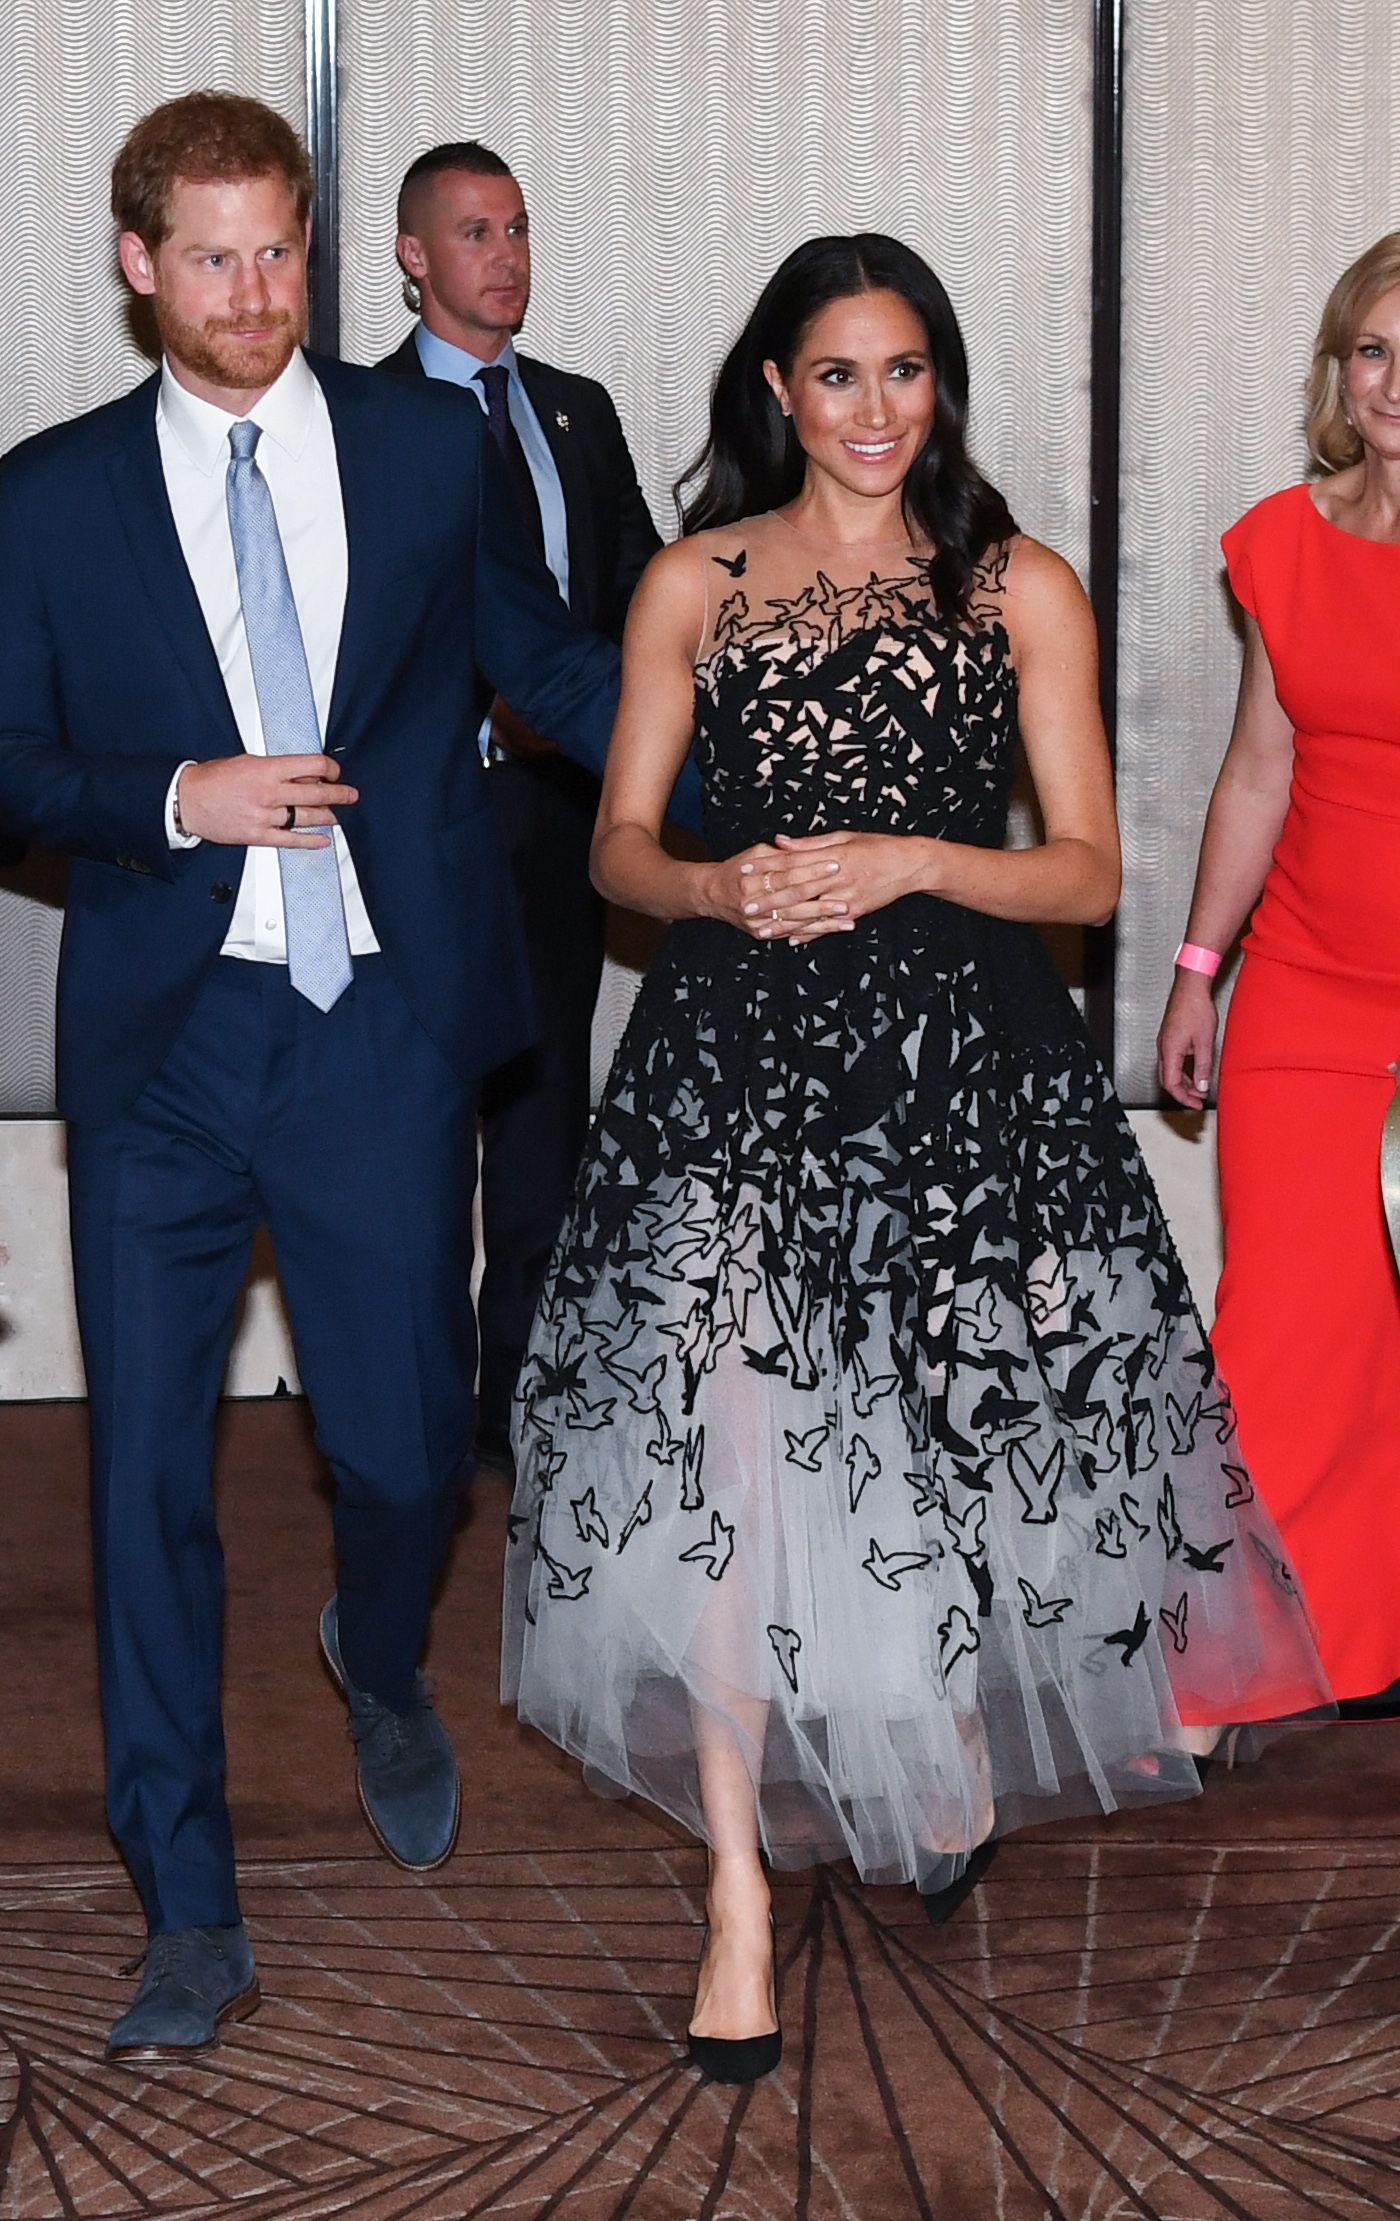 Back in Sydney after a whirlwind day in Tonga, Harry and Meghan changed into formal attire for an elegant evening at the Australian Geographic Society Awards. The Duchess wore a black and white gown by Oscar de la Renta for the night.